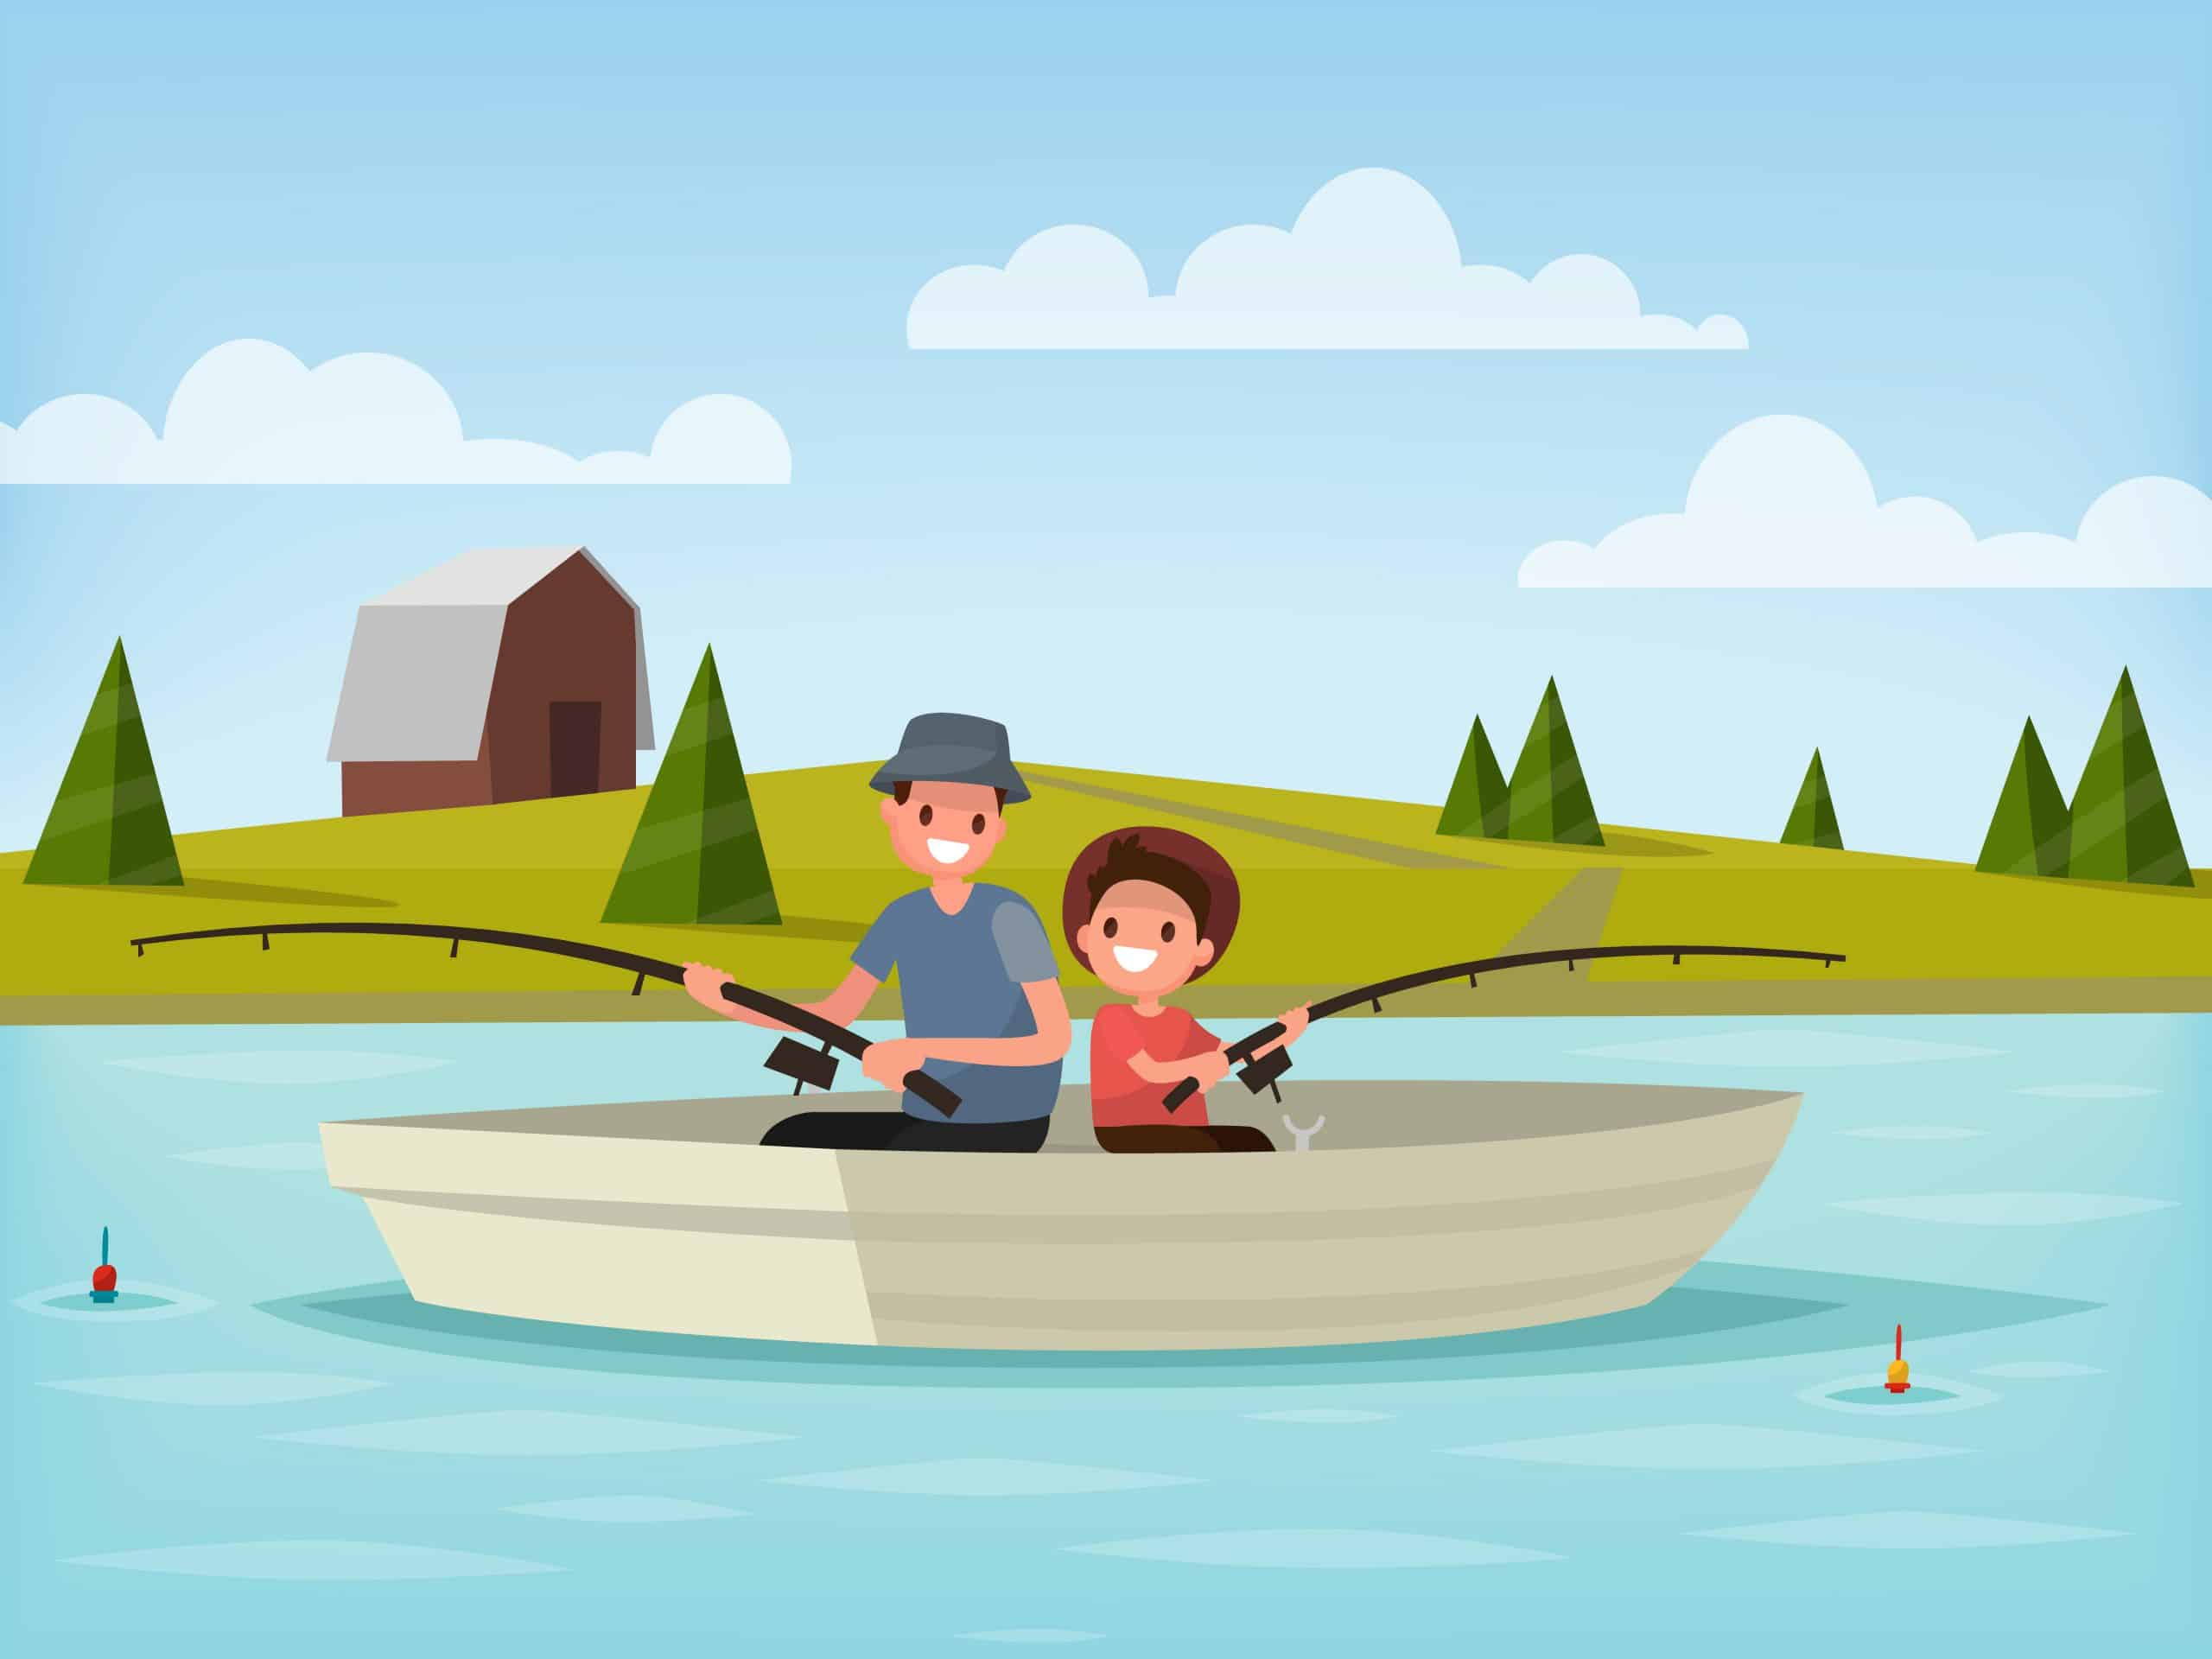 Taking Kids Fishing: Illustration of father and son sitting in a boat fishing in a lake